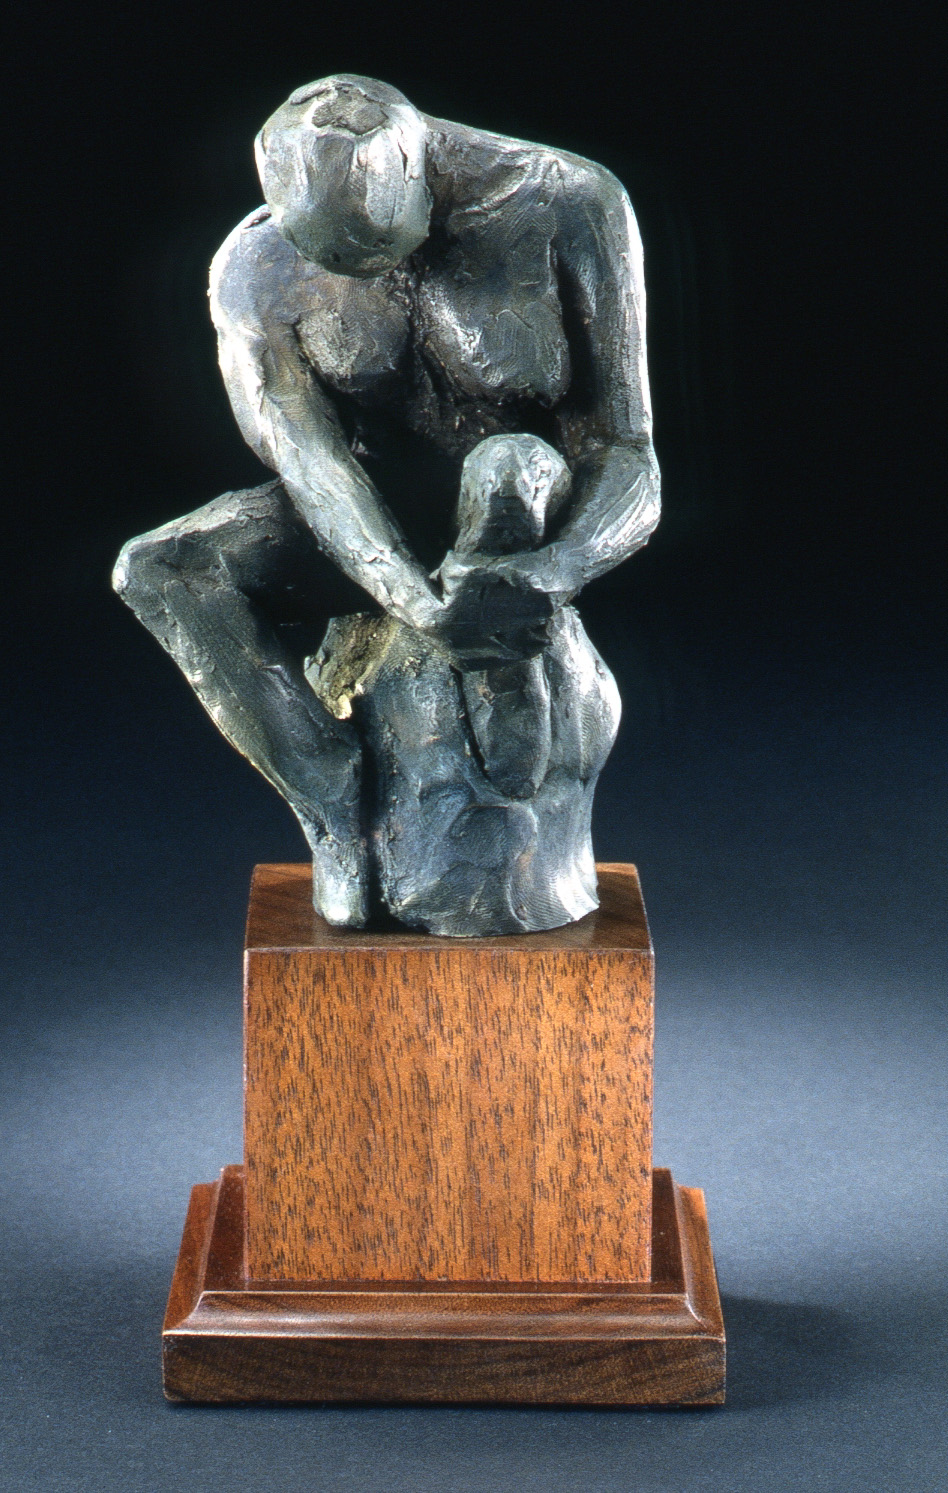 La Penseuse (1999) Cold Cast Bronze, Edition: 30, 9x4x4in. $650